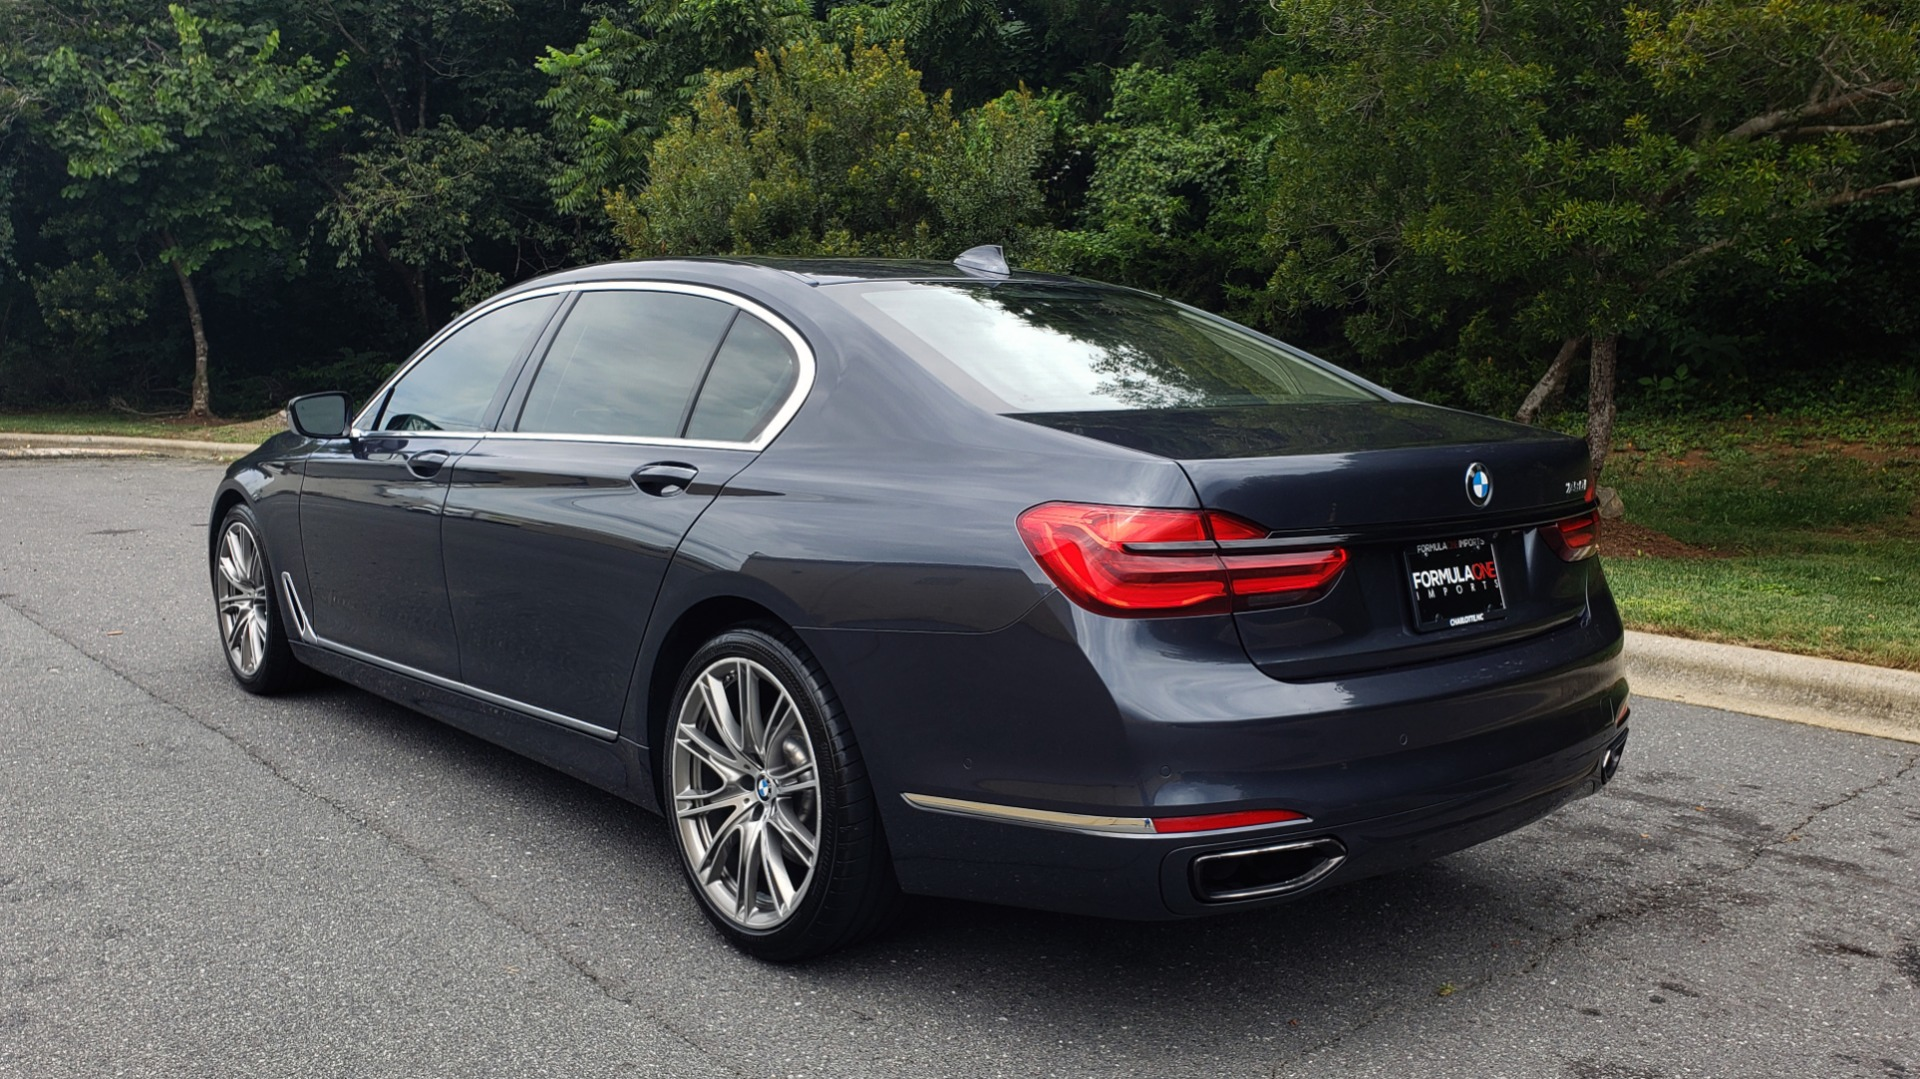 Used 2016 BMW 7 SERIES 750I EXEC PKG / DRVR ASST PLUS / CLD WTHR / SKY LOUNGE ROOF for sale Sold at Formula Imports in Charlotte NC 28227 3